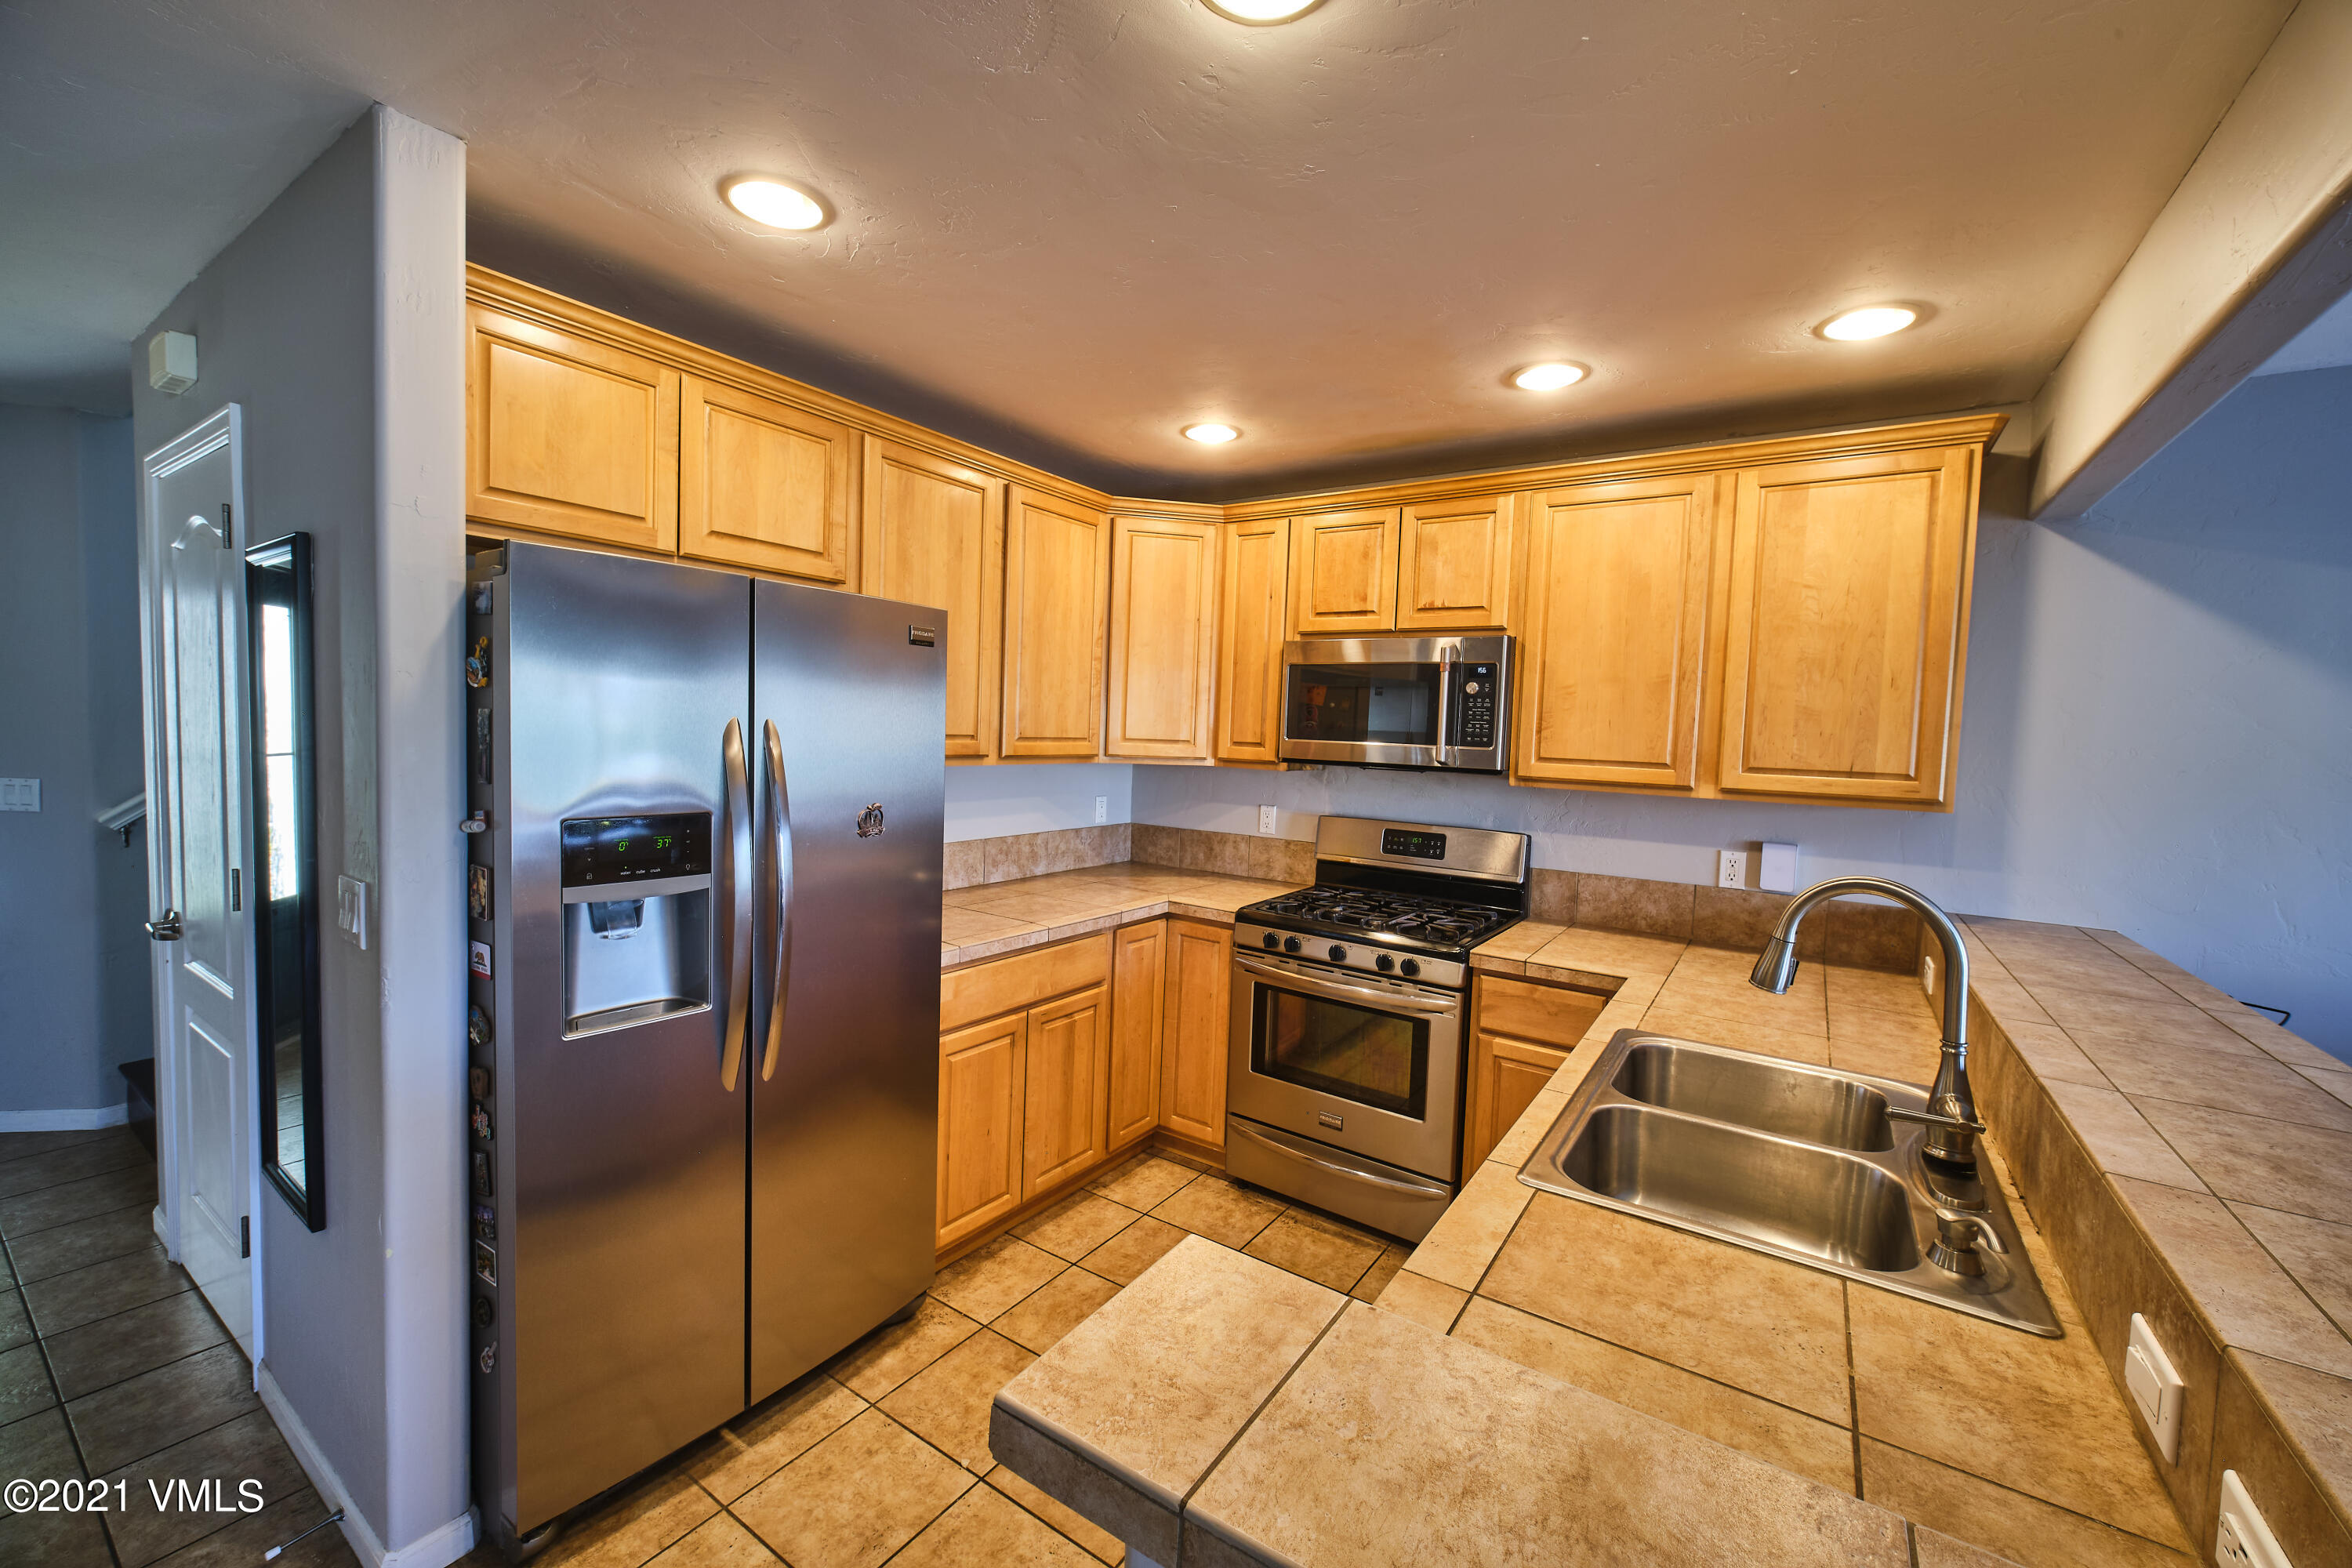 This is an opportunity you can't miss! 3bd/2.5 ba with one car garage  townhome in a highly desirable Eagle location. The property is deed restricted. Call for details.